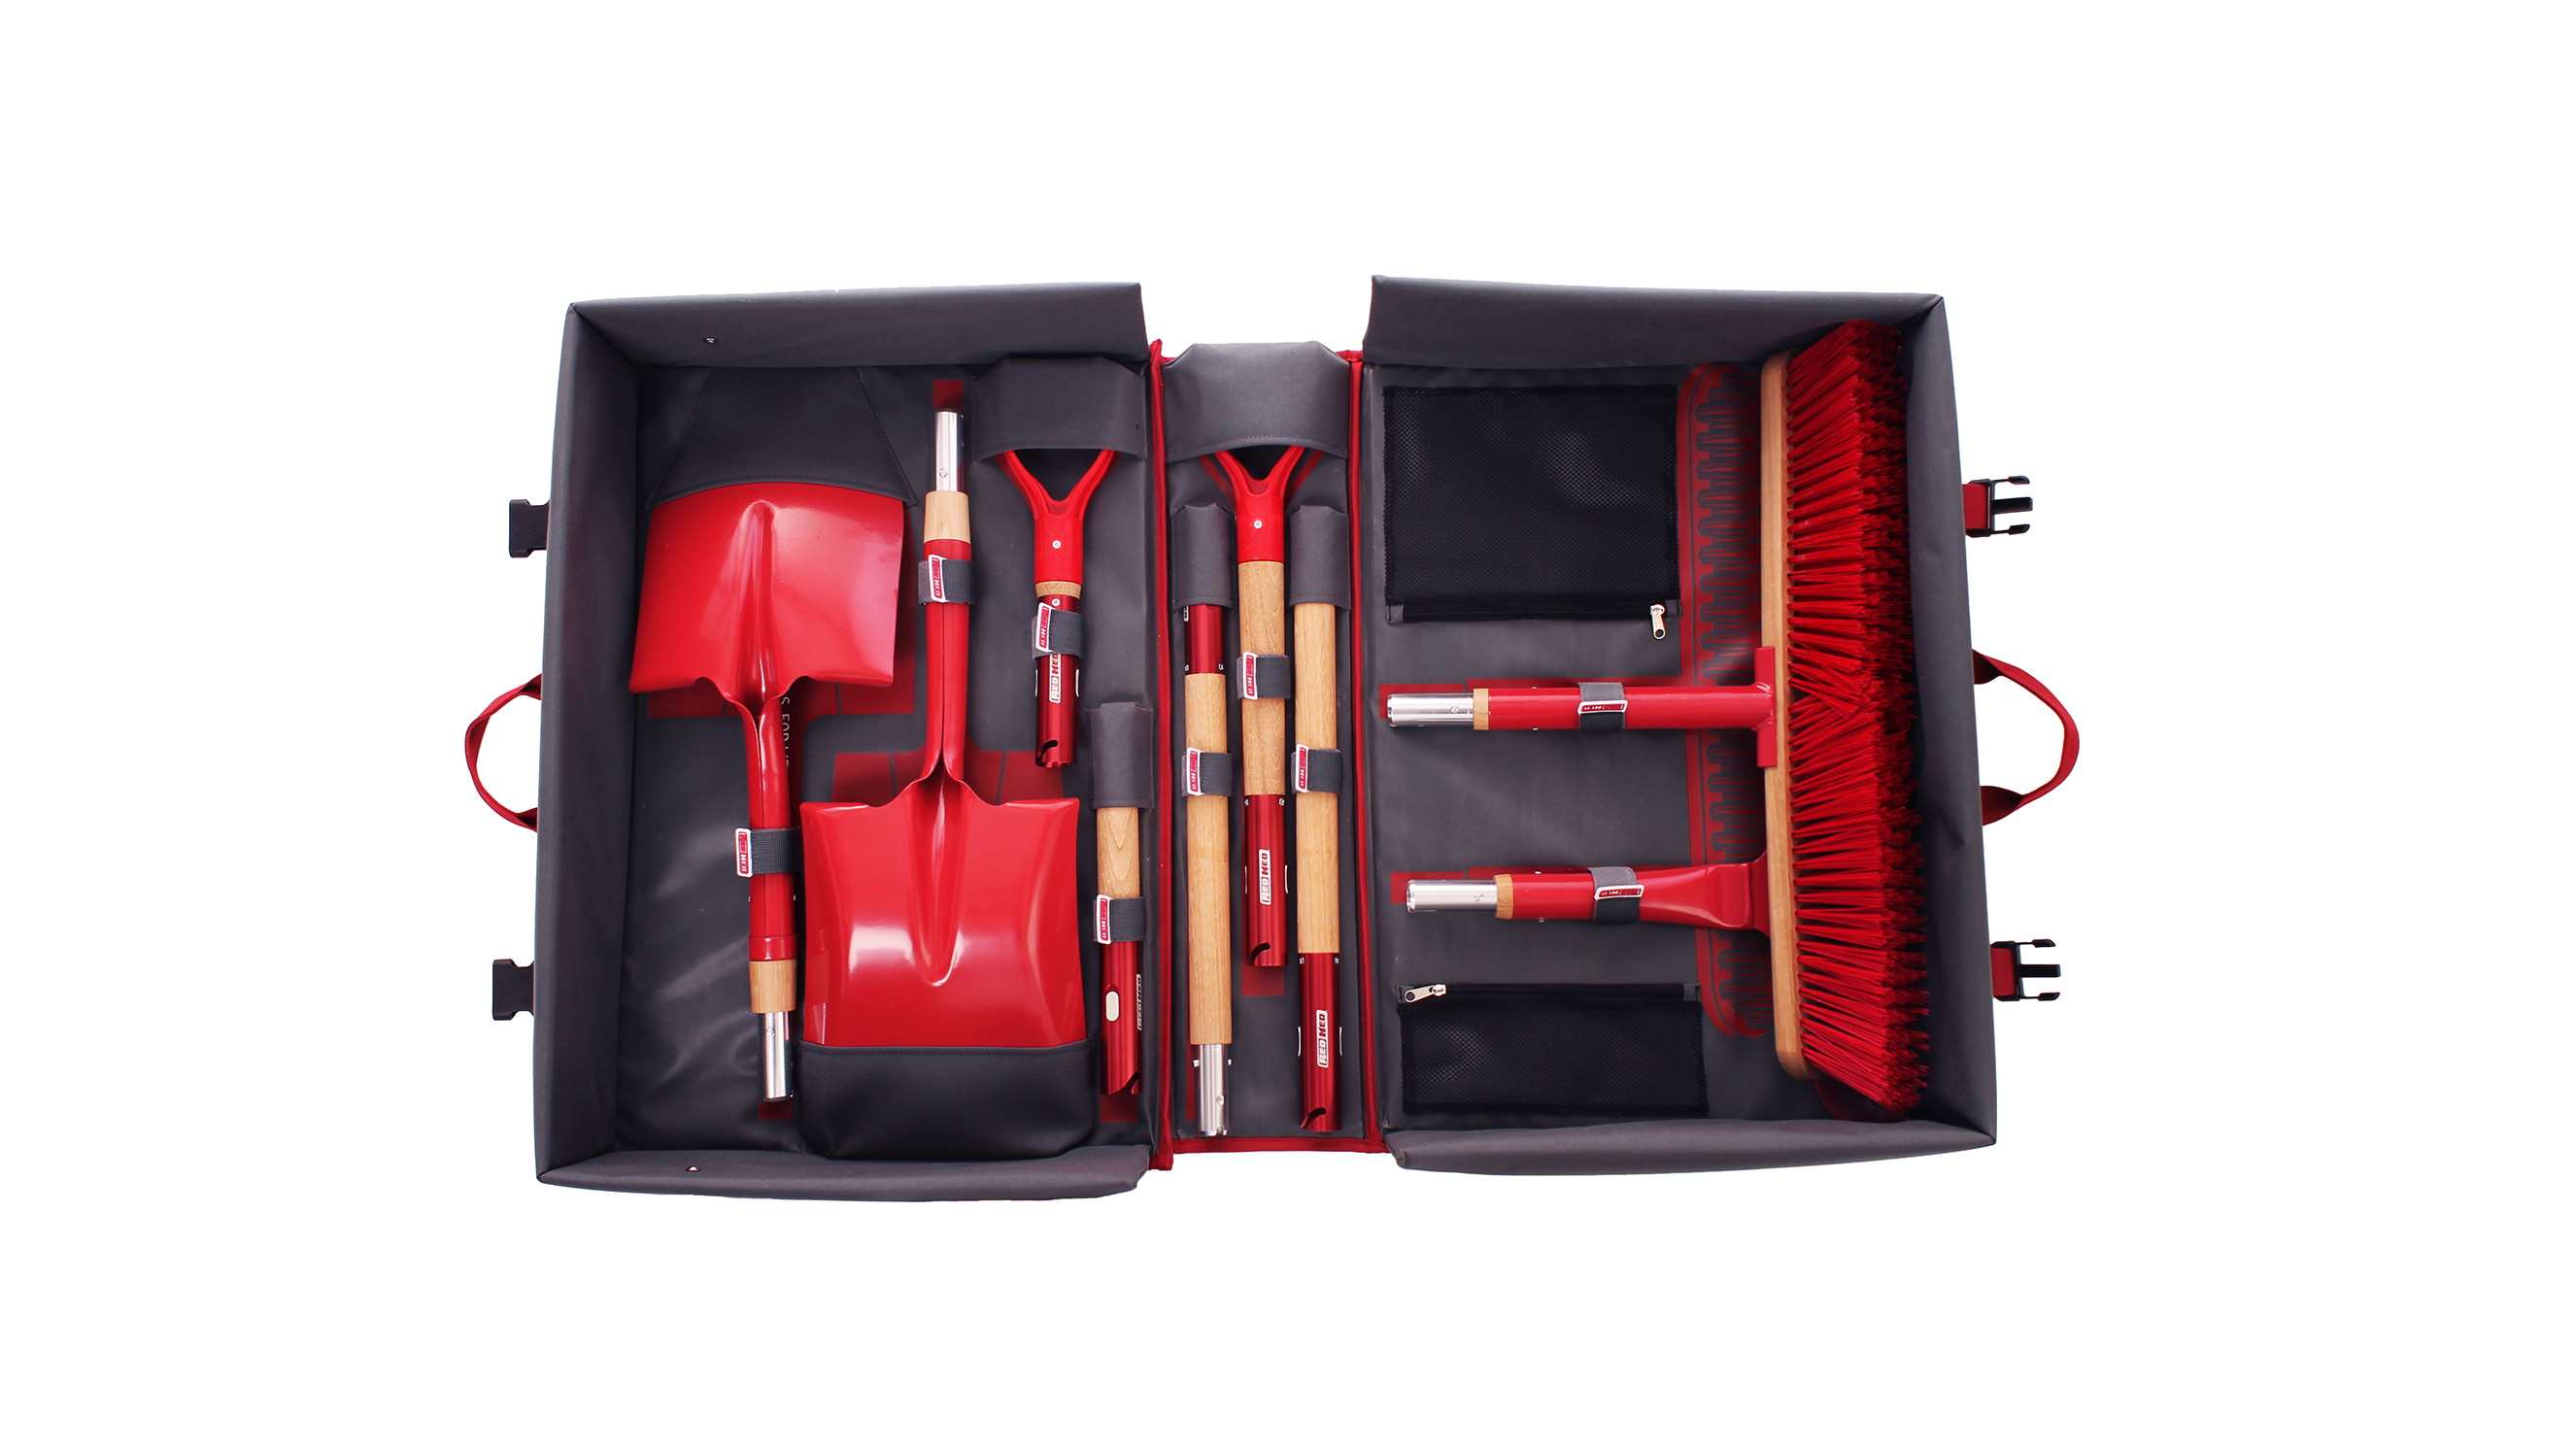 This Clever Modular Gardening Kit Fits 32 Big Tools Into One Small Bag